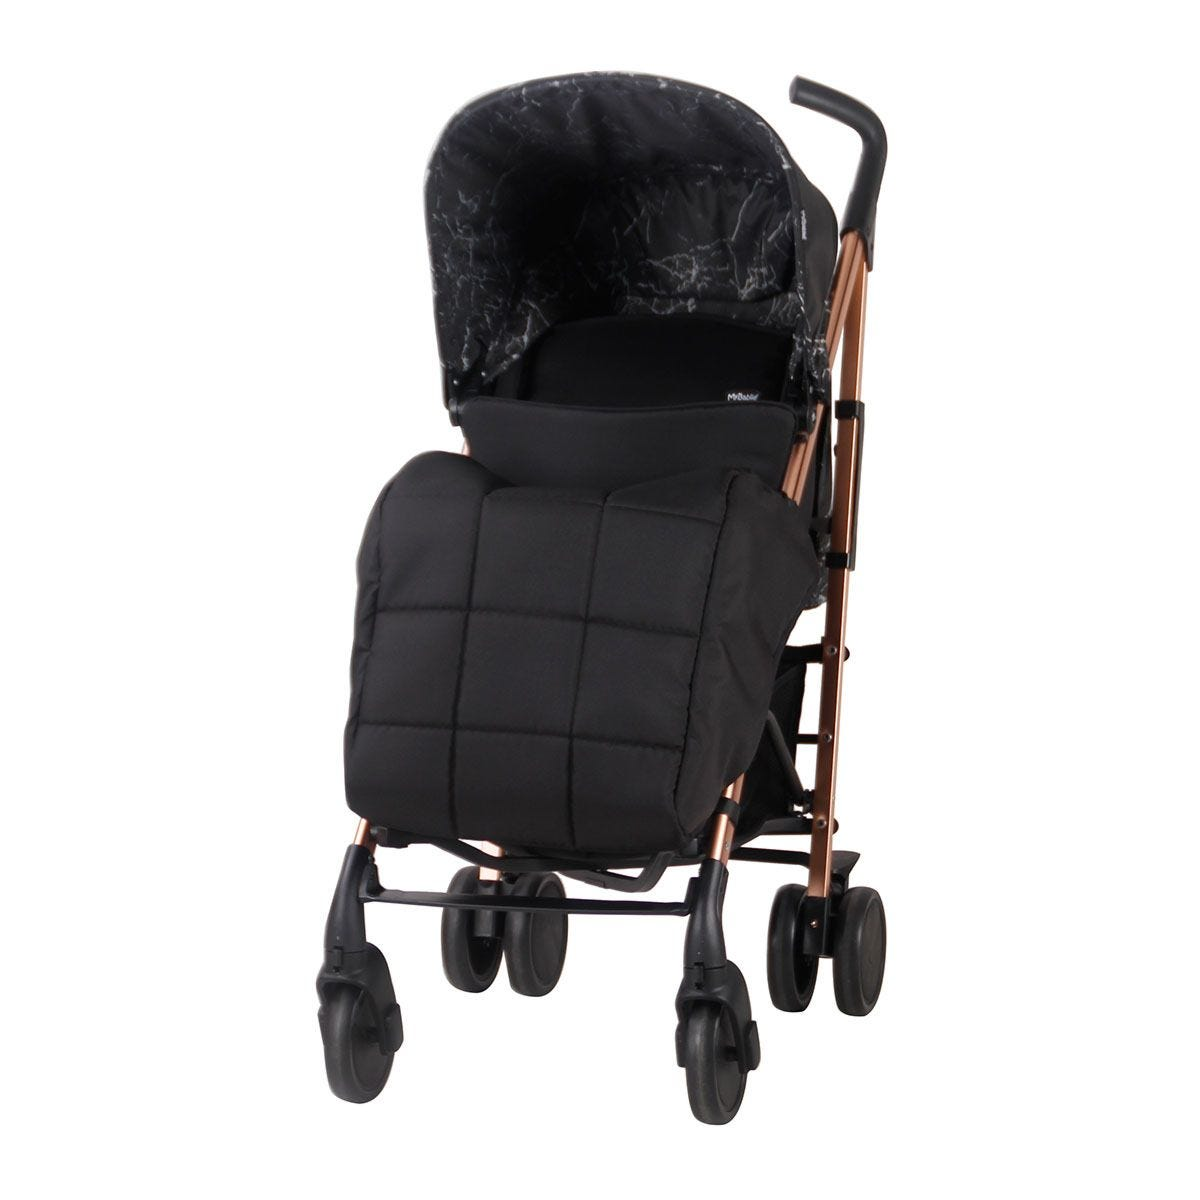 My Babiie Dreamiie by Samantha Faiers MB51 Marble Stroller - Black